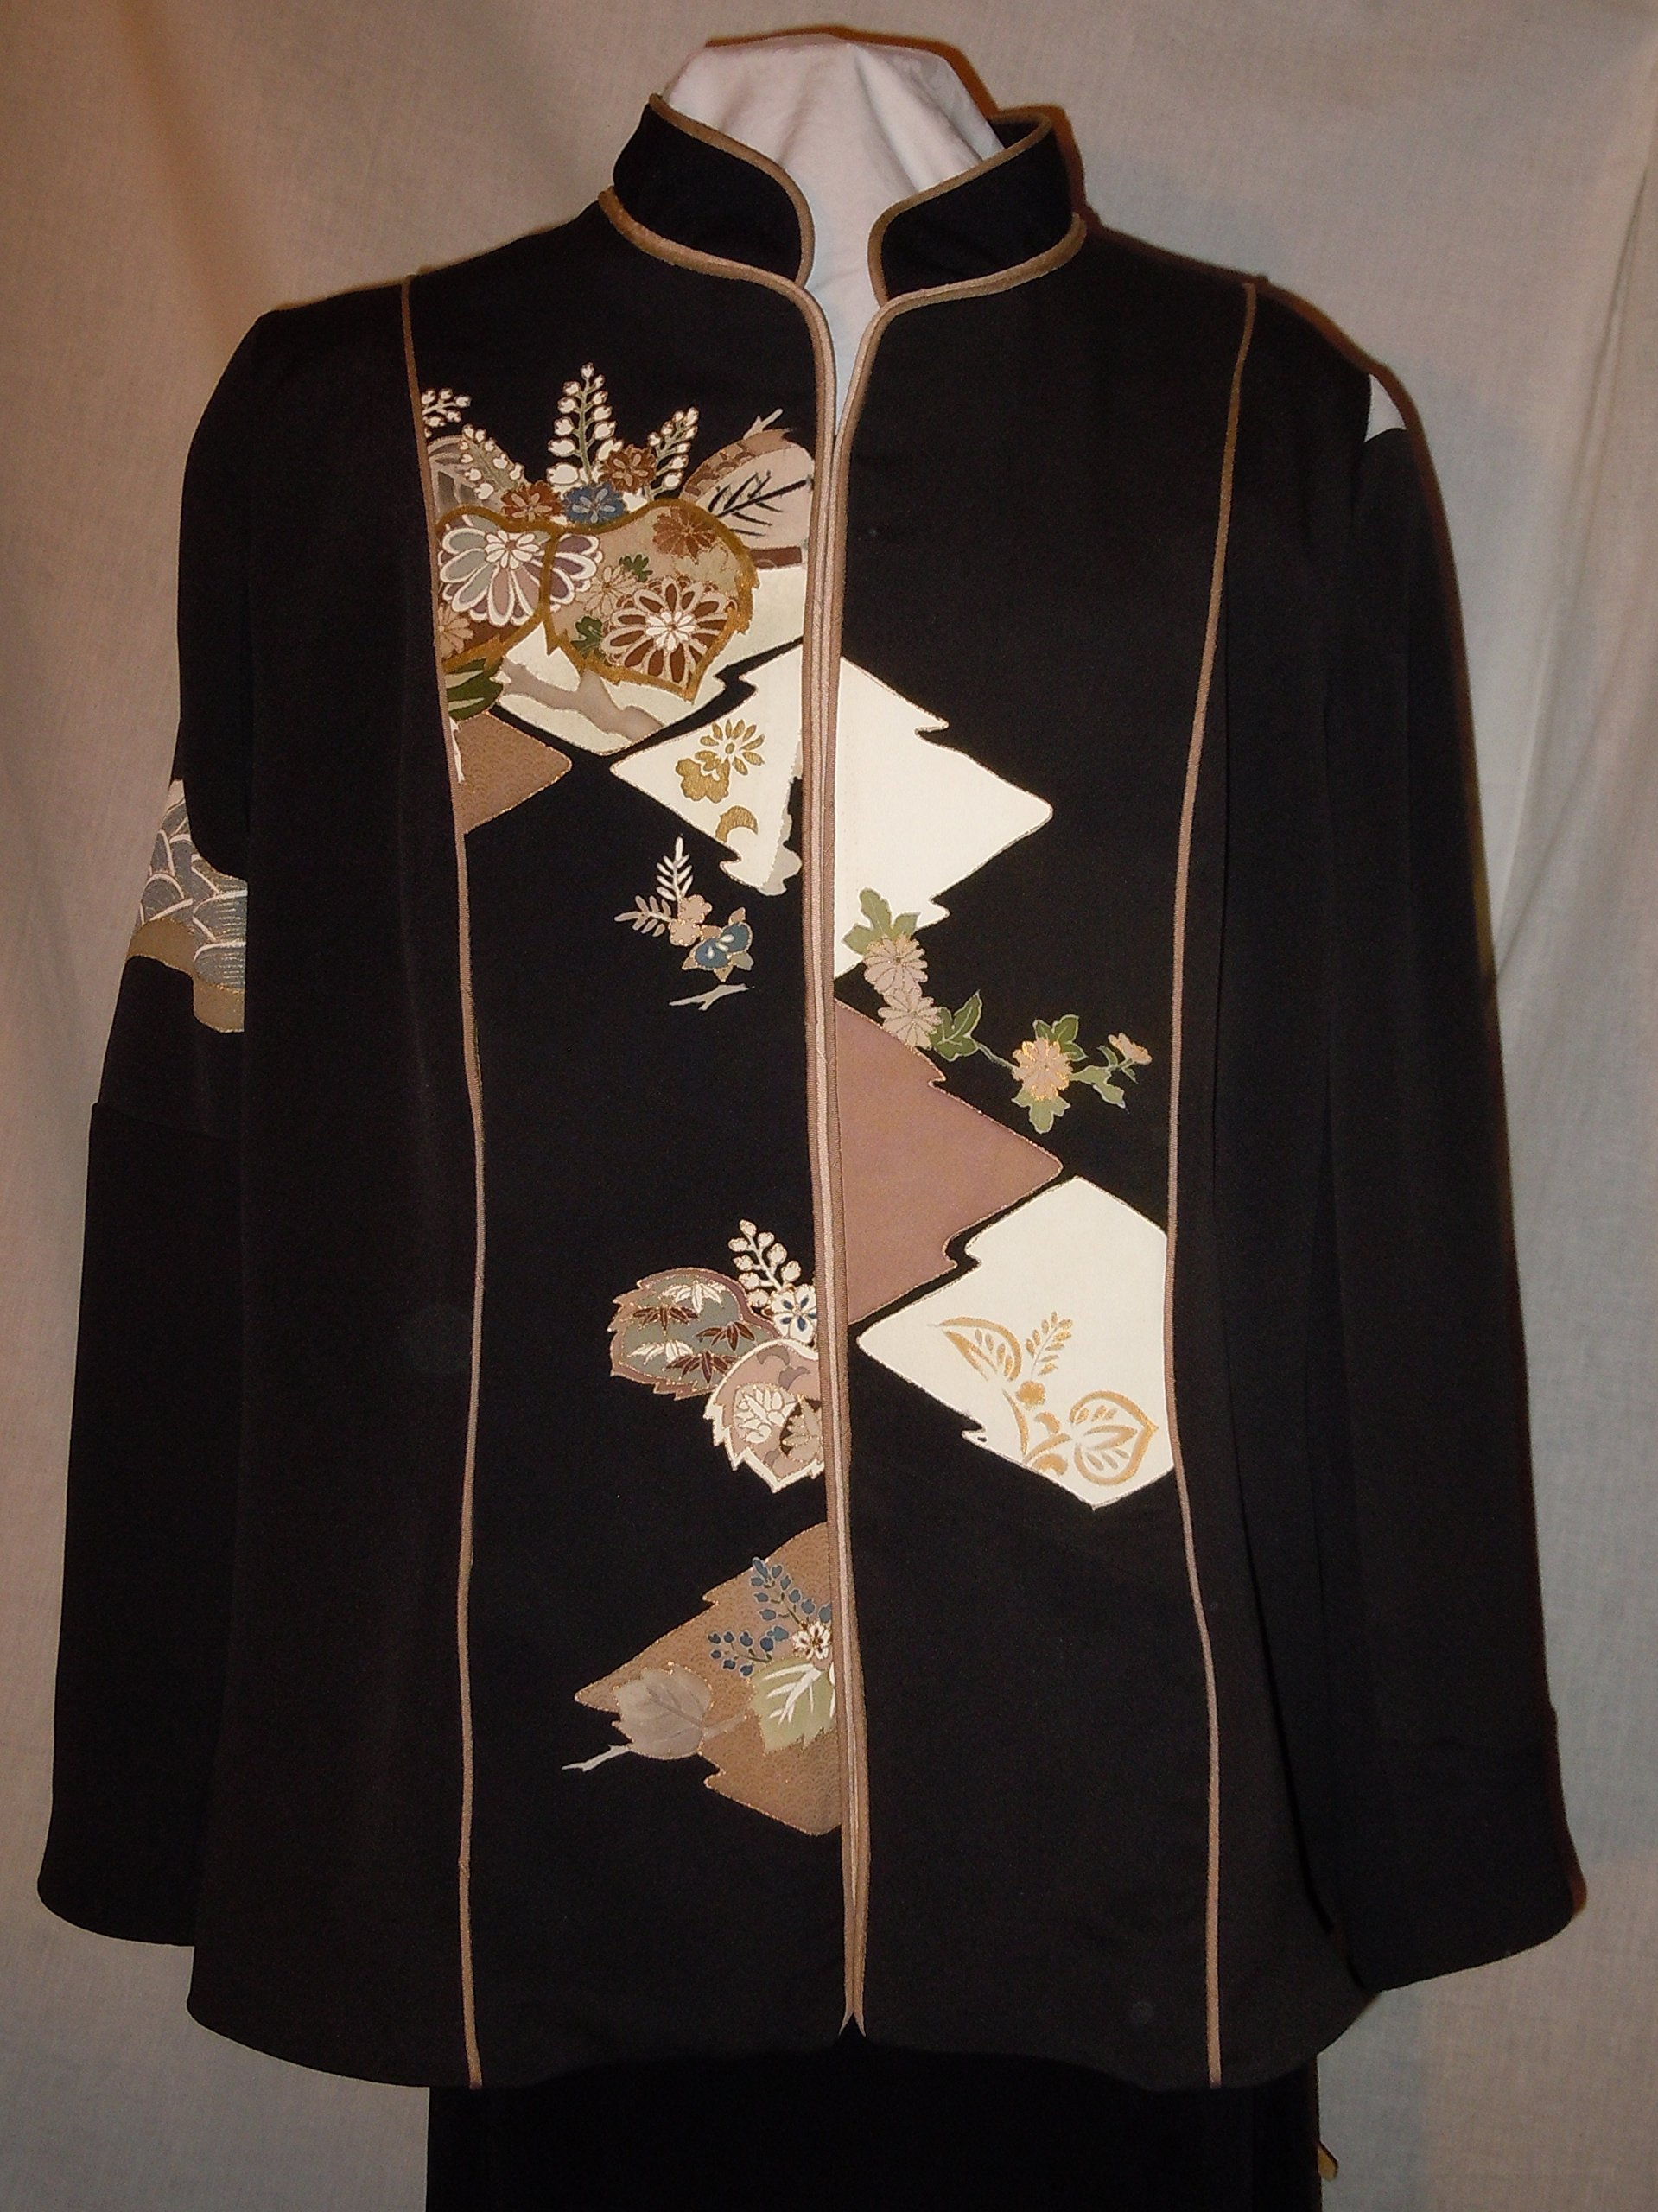 Black silk jacket from vintage kimono, with gold hand dyed motifs and embroidery, size large. One of a Kind #F20